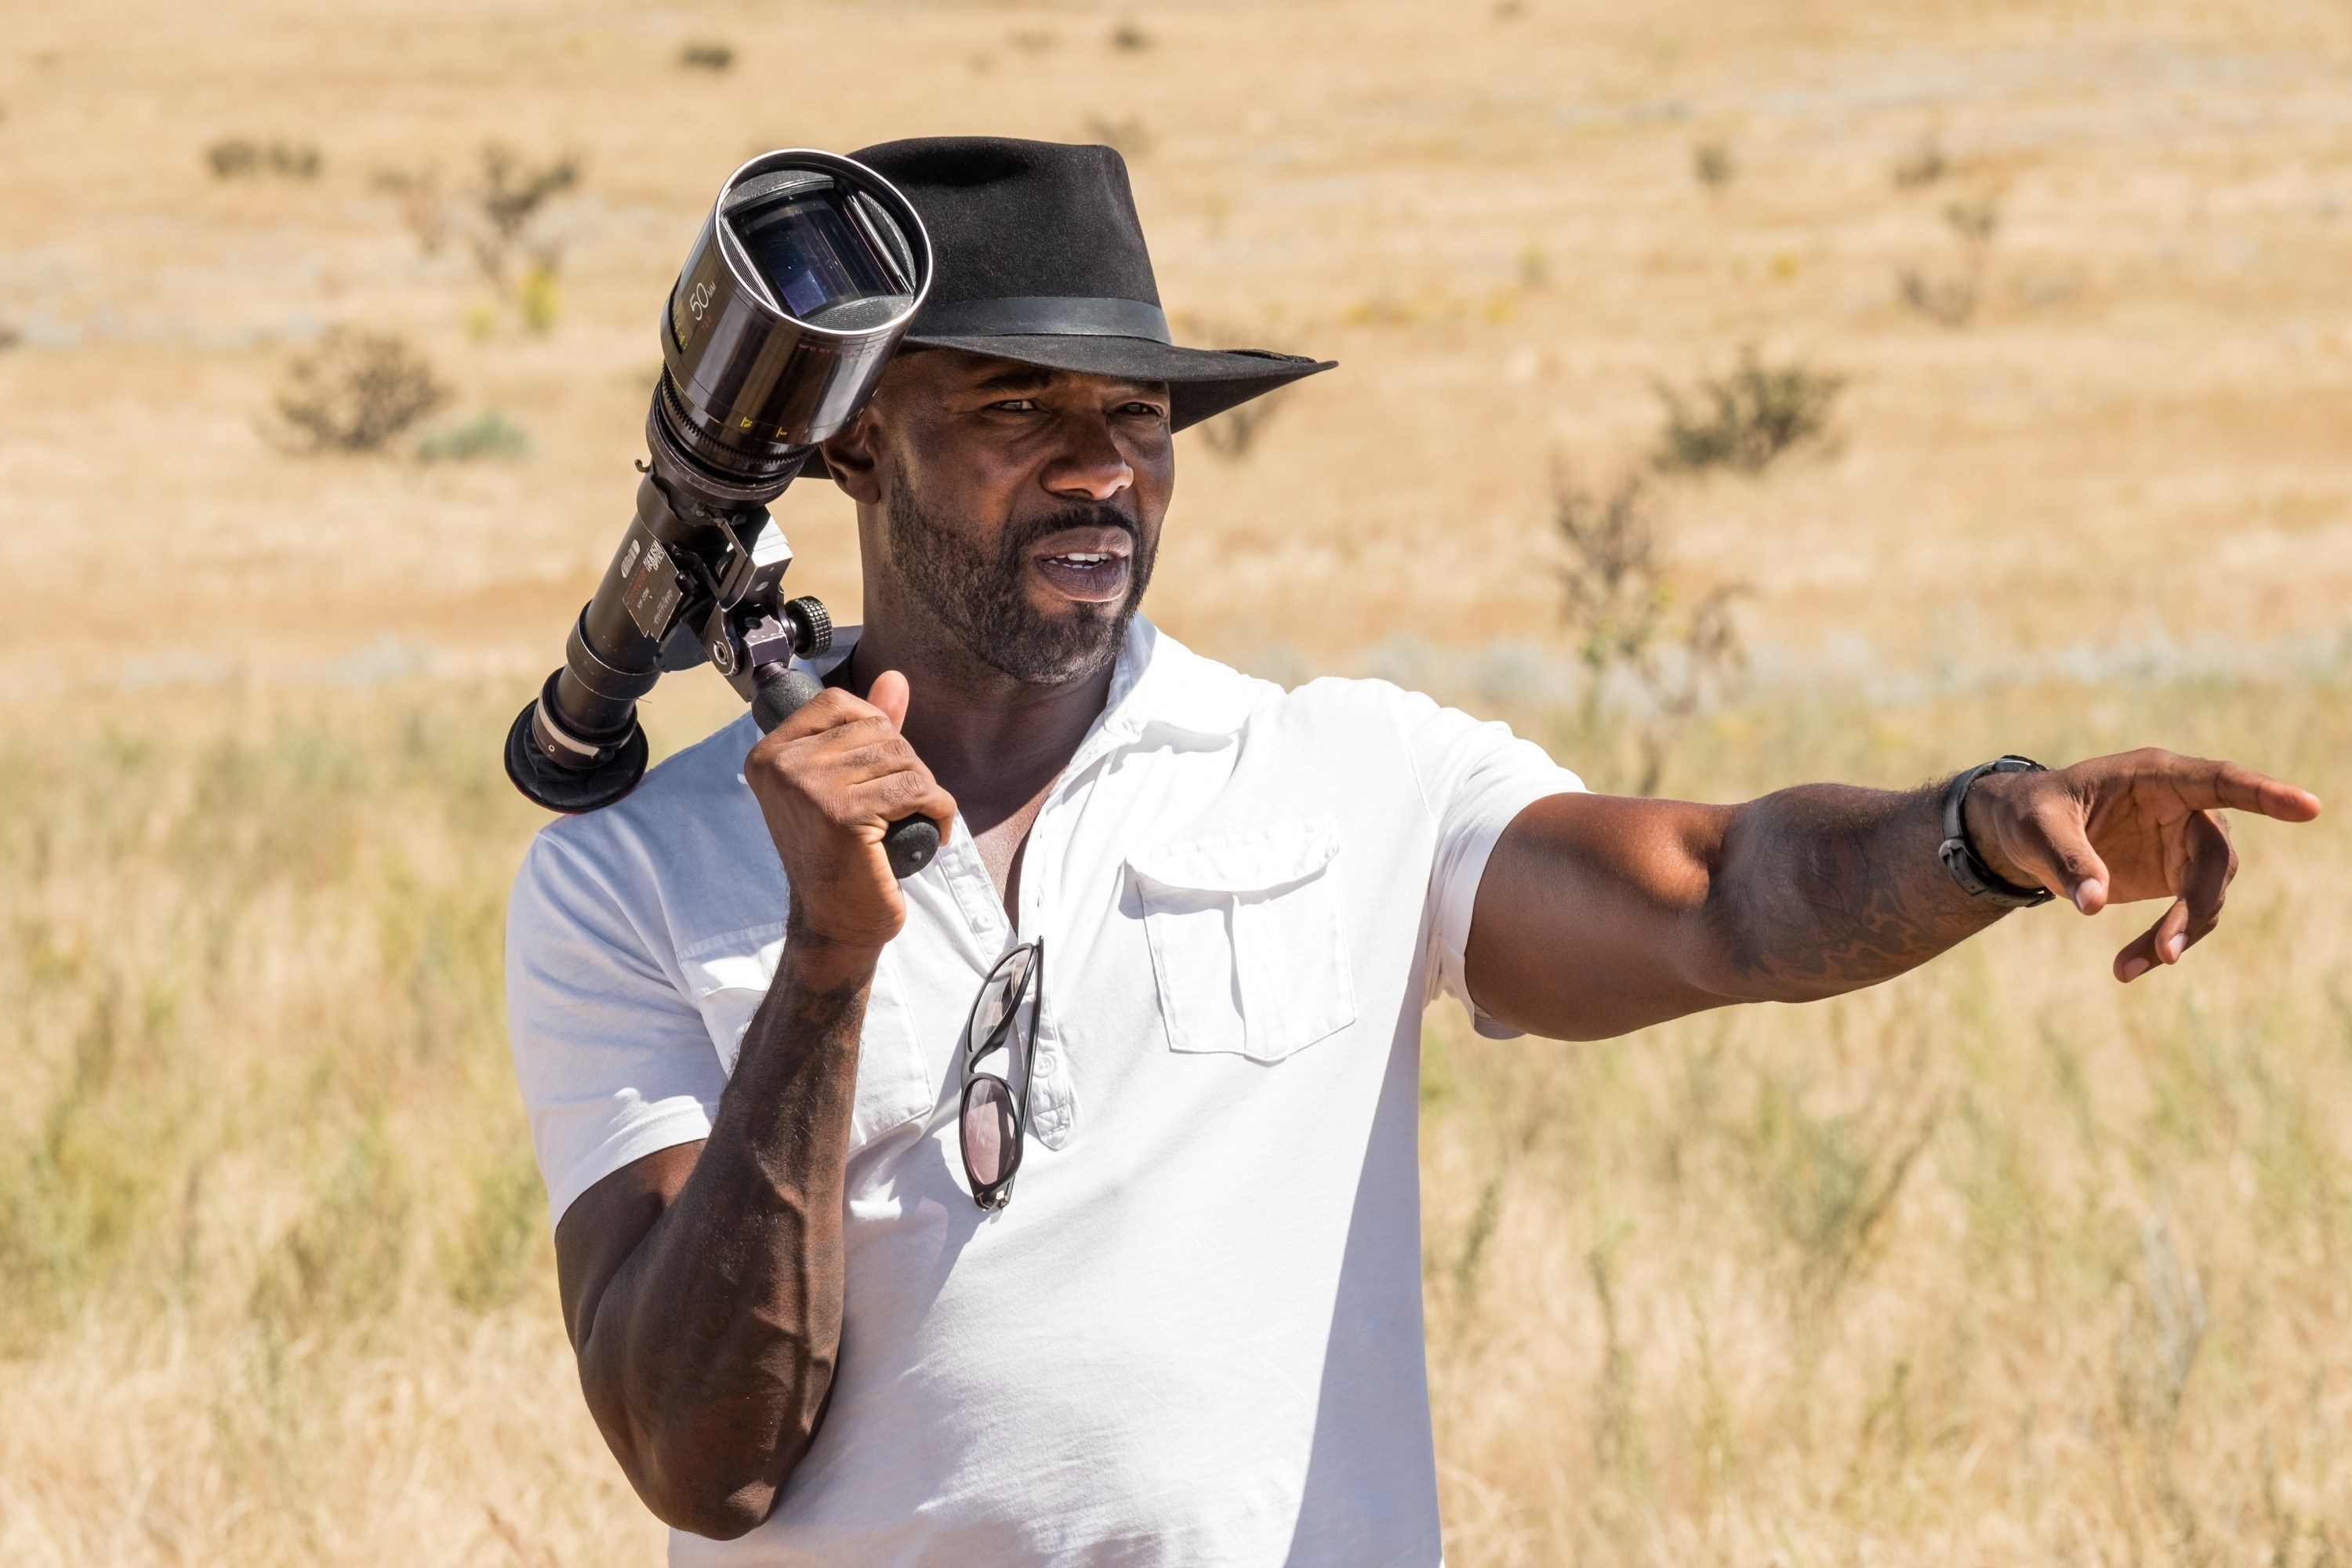 Director Antoine Fuqua examines shot options on the set of The Magnificent Seven.